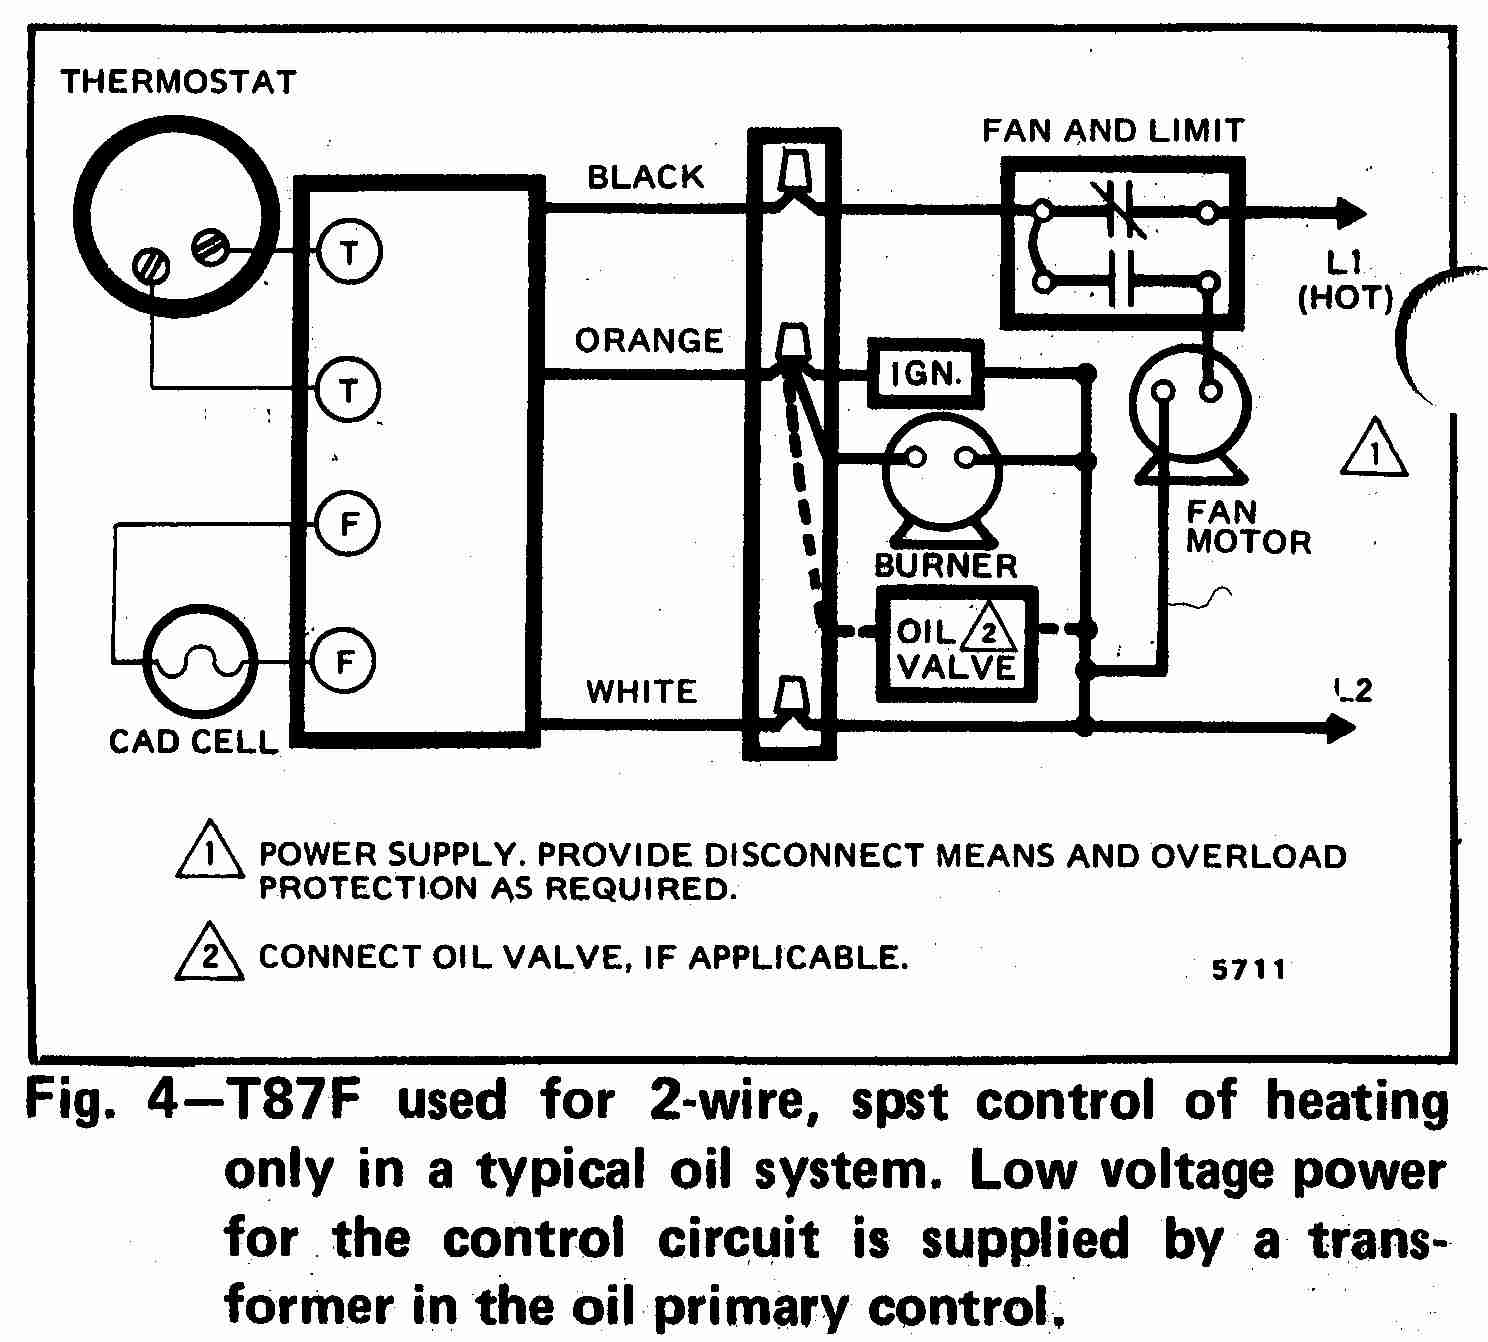 TT_T87F_0002_2W_DJF room thermostat wiring diagrams for hvac systems honeywell 7800 wiring diagram at reclaimingppi.co